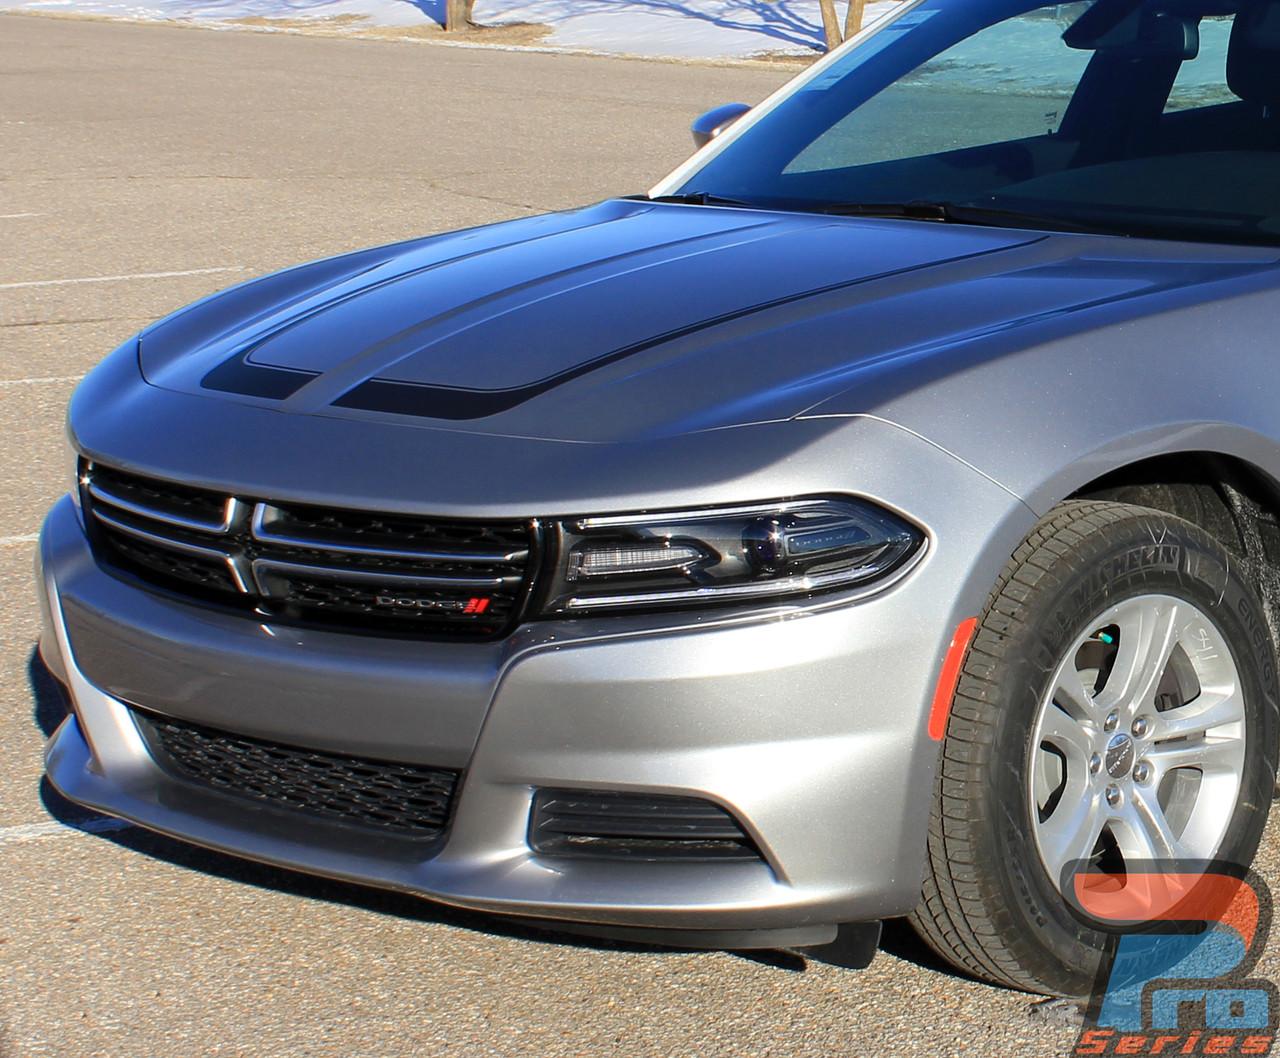 2008 Charger Rt >> SCALLOP HOOD 15 | Dodge Charger Stripes | Charger Decals | Charger Vinyl Graphics